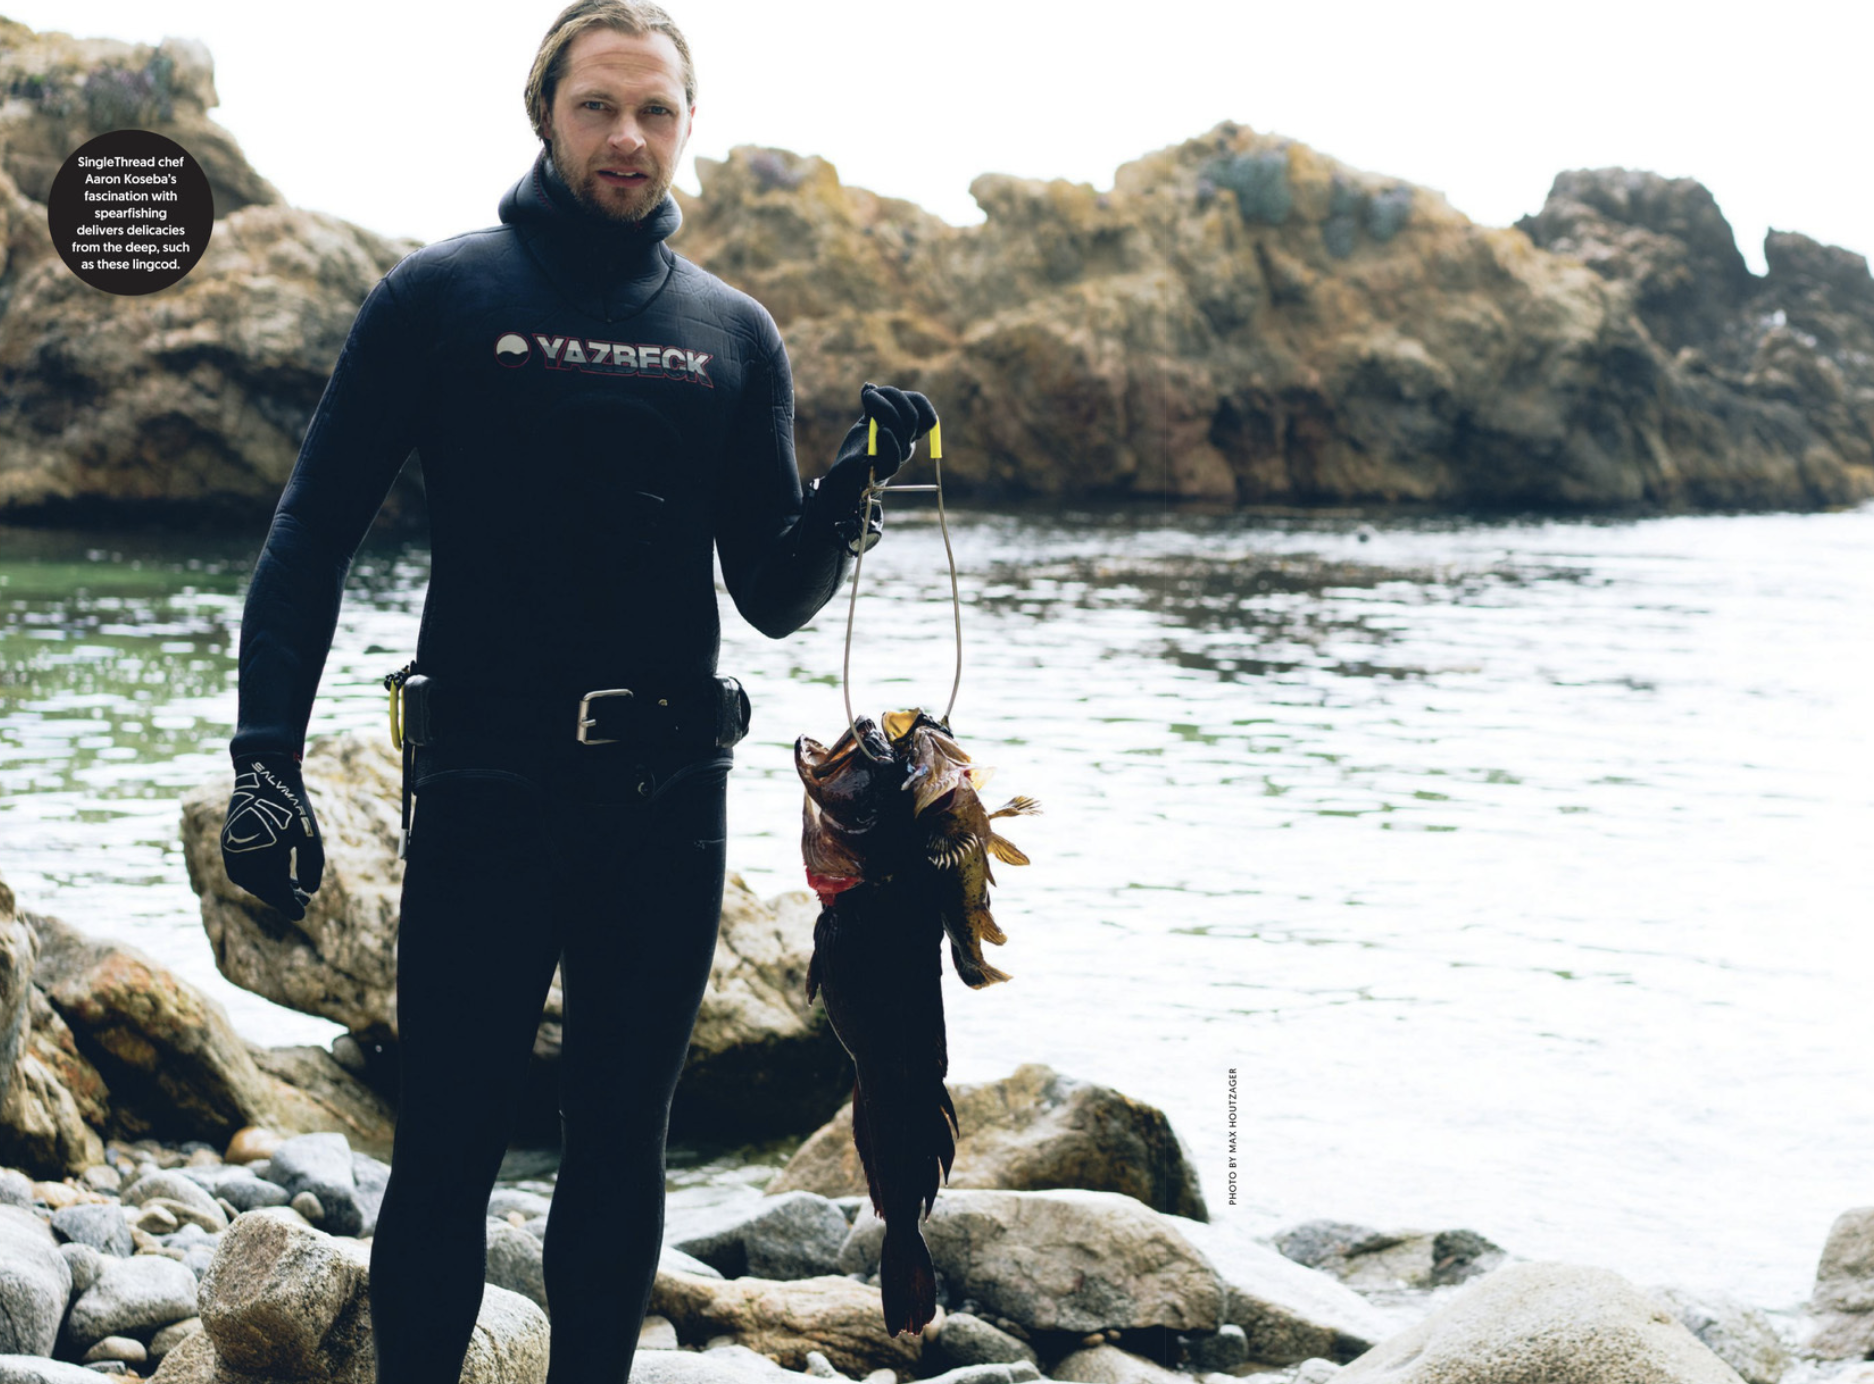 San Francisco Magazine - Koseba's Trident: A passion for spearfishing makes this chef a rare breed